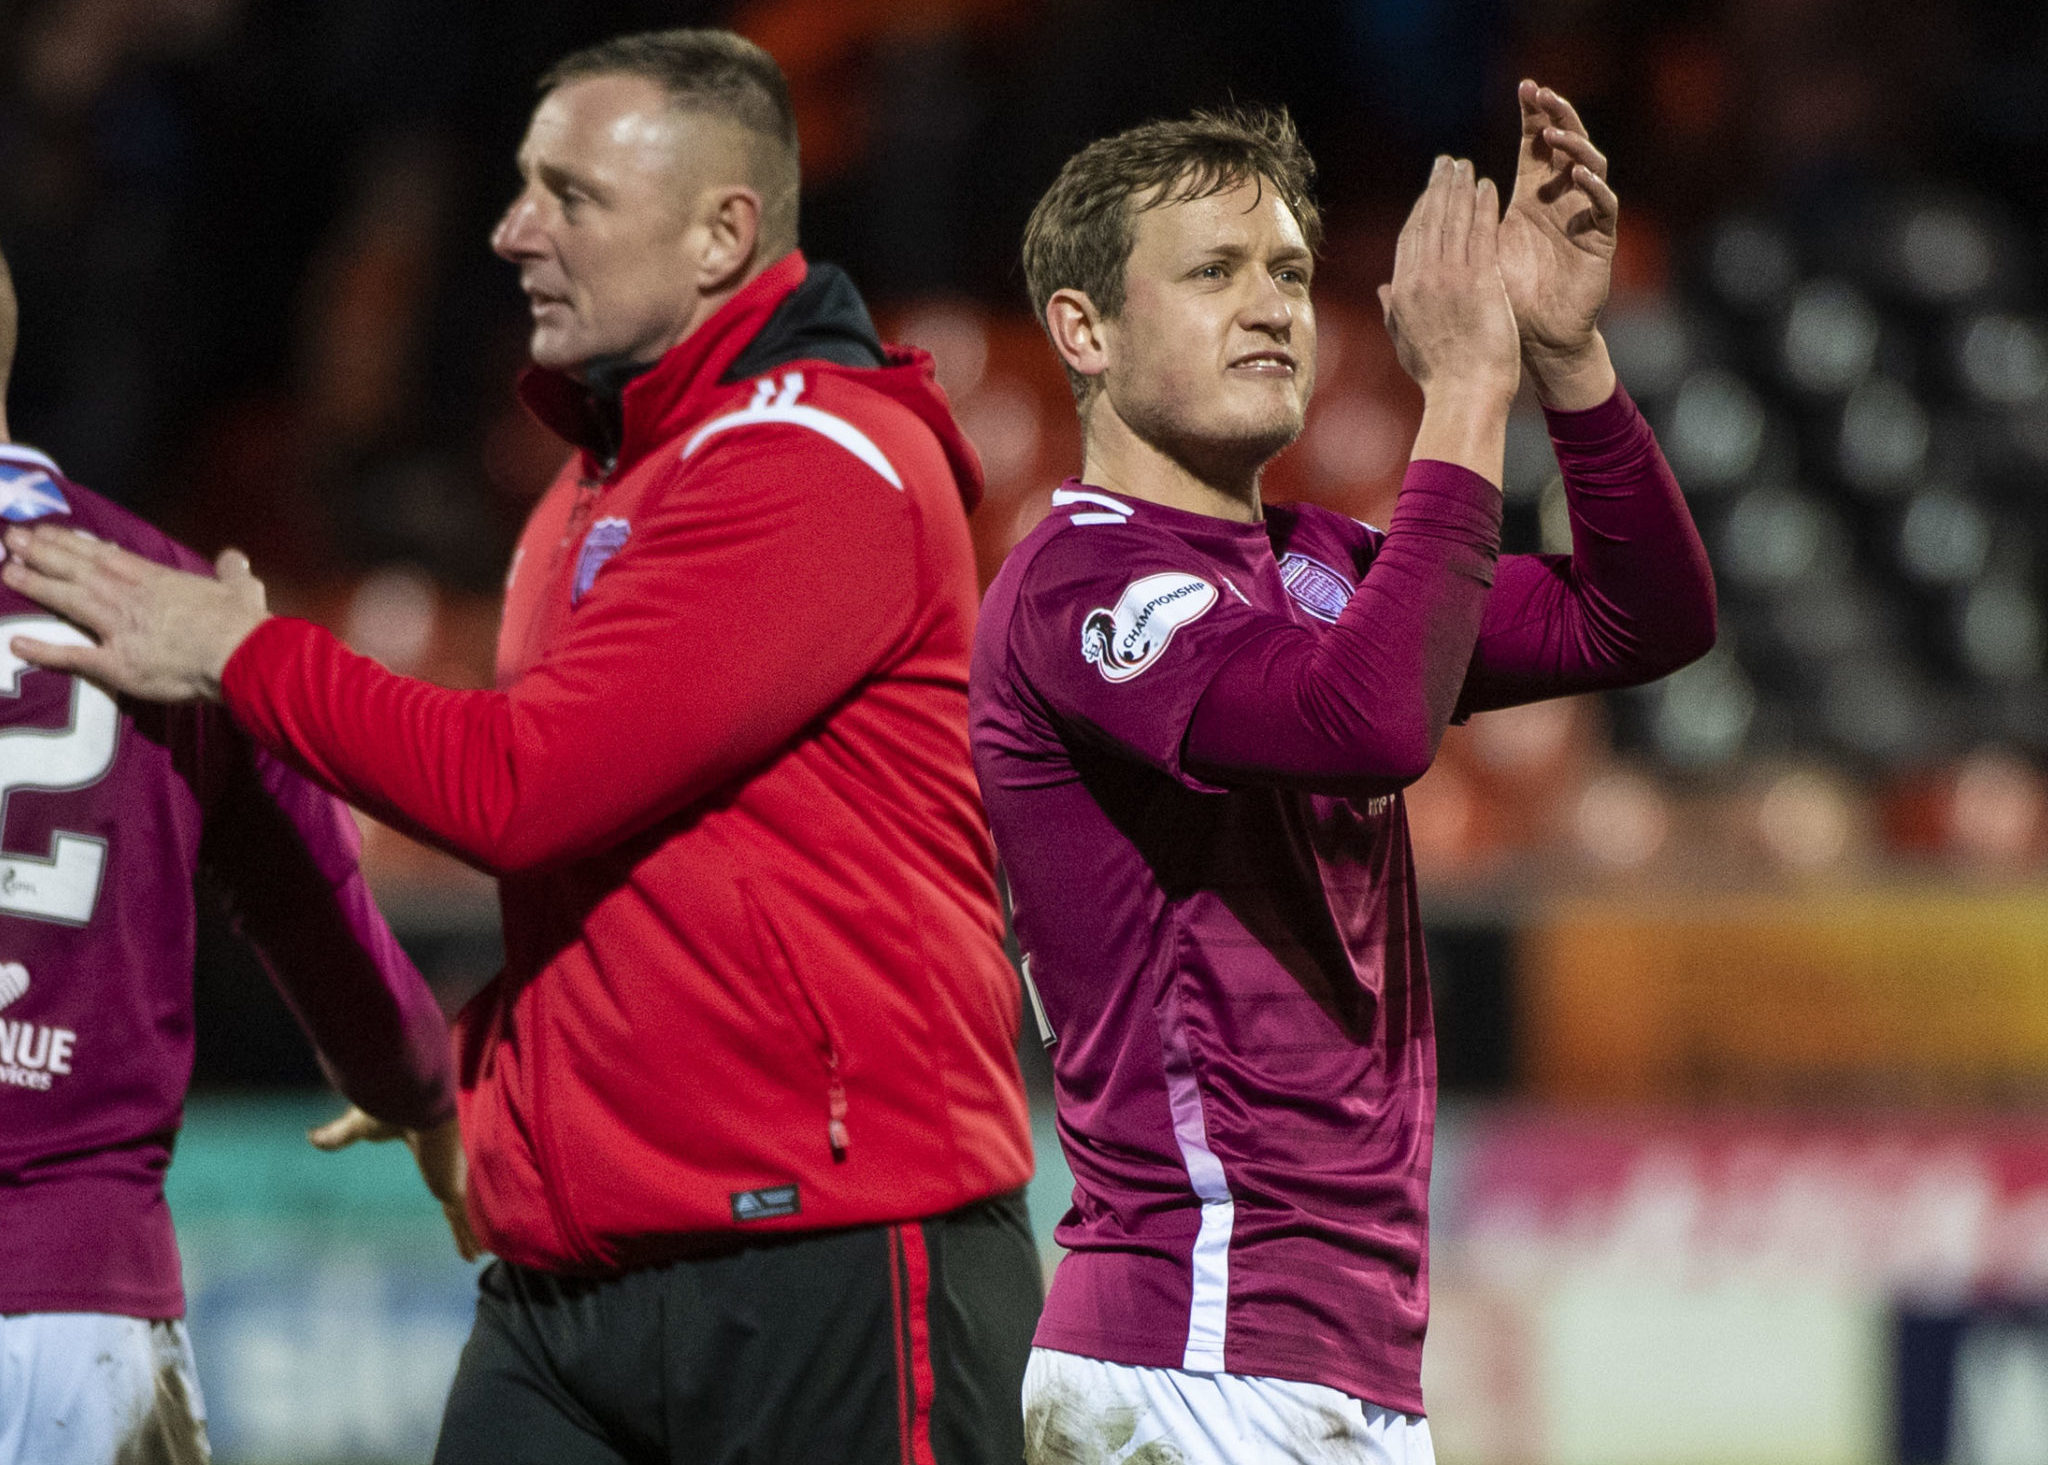 Rab, left, and new Arbroath signing James Craigen celebrate at full-time.